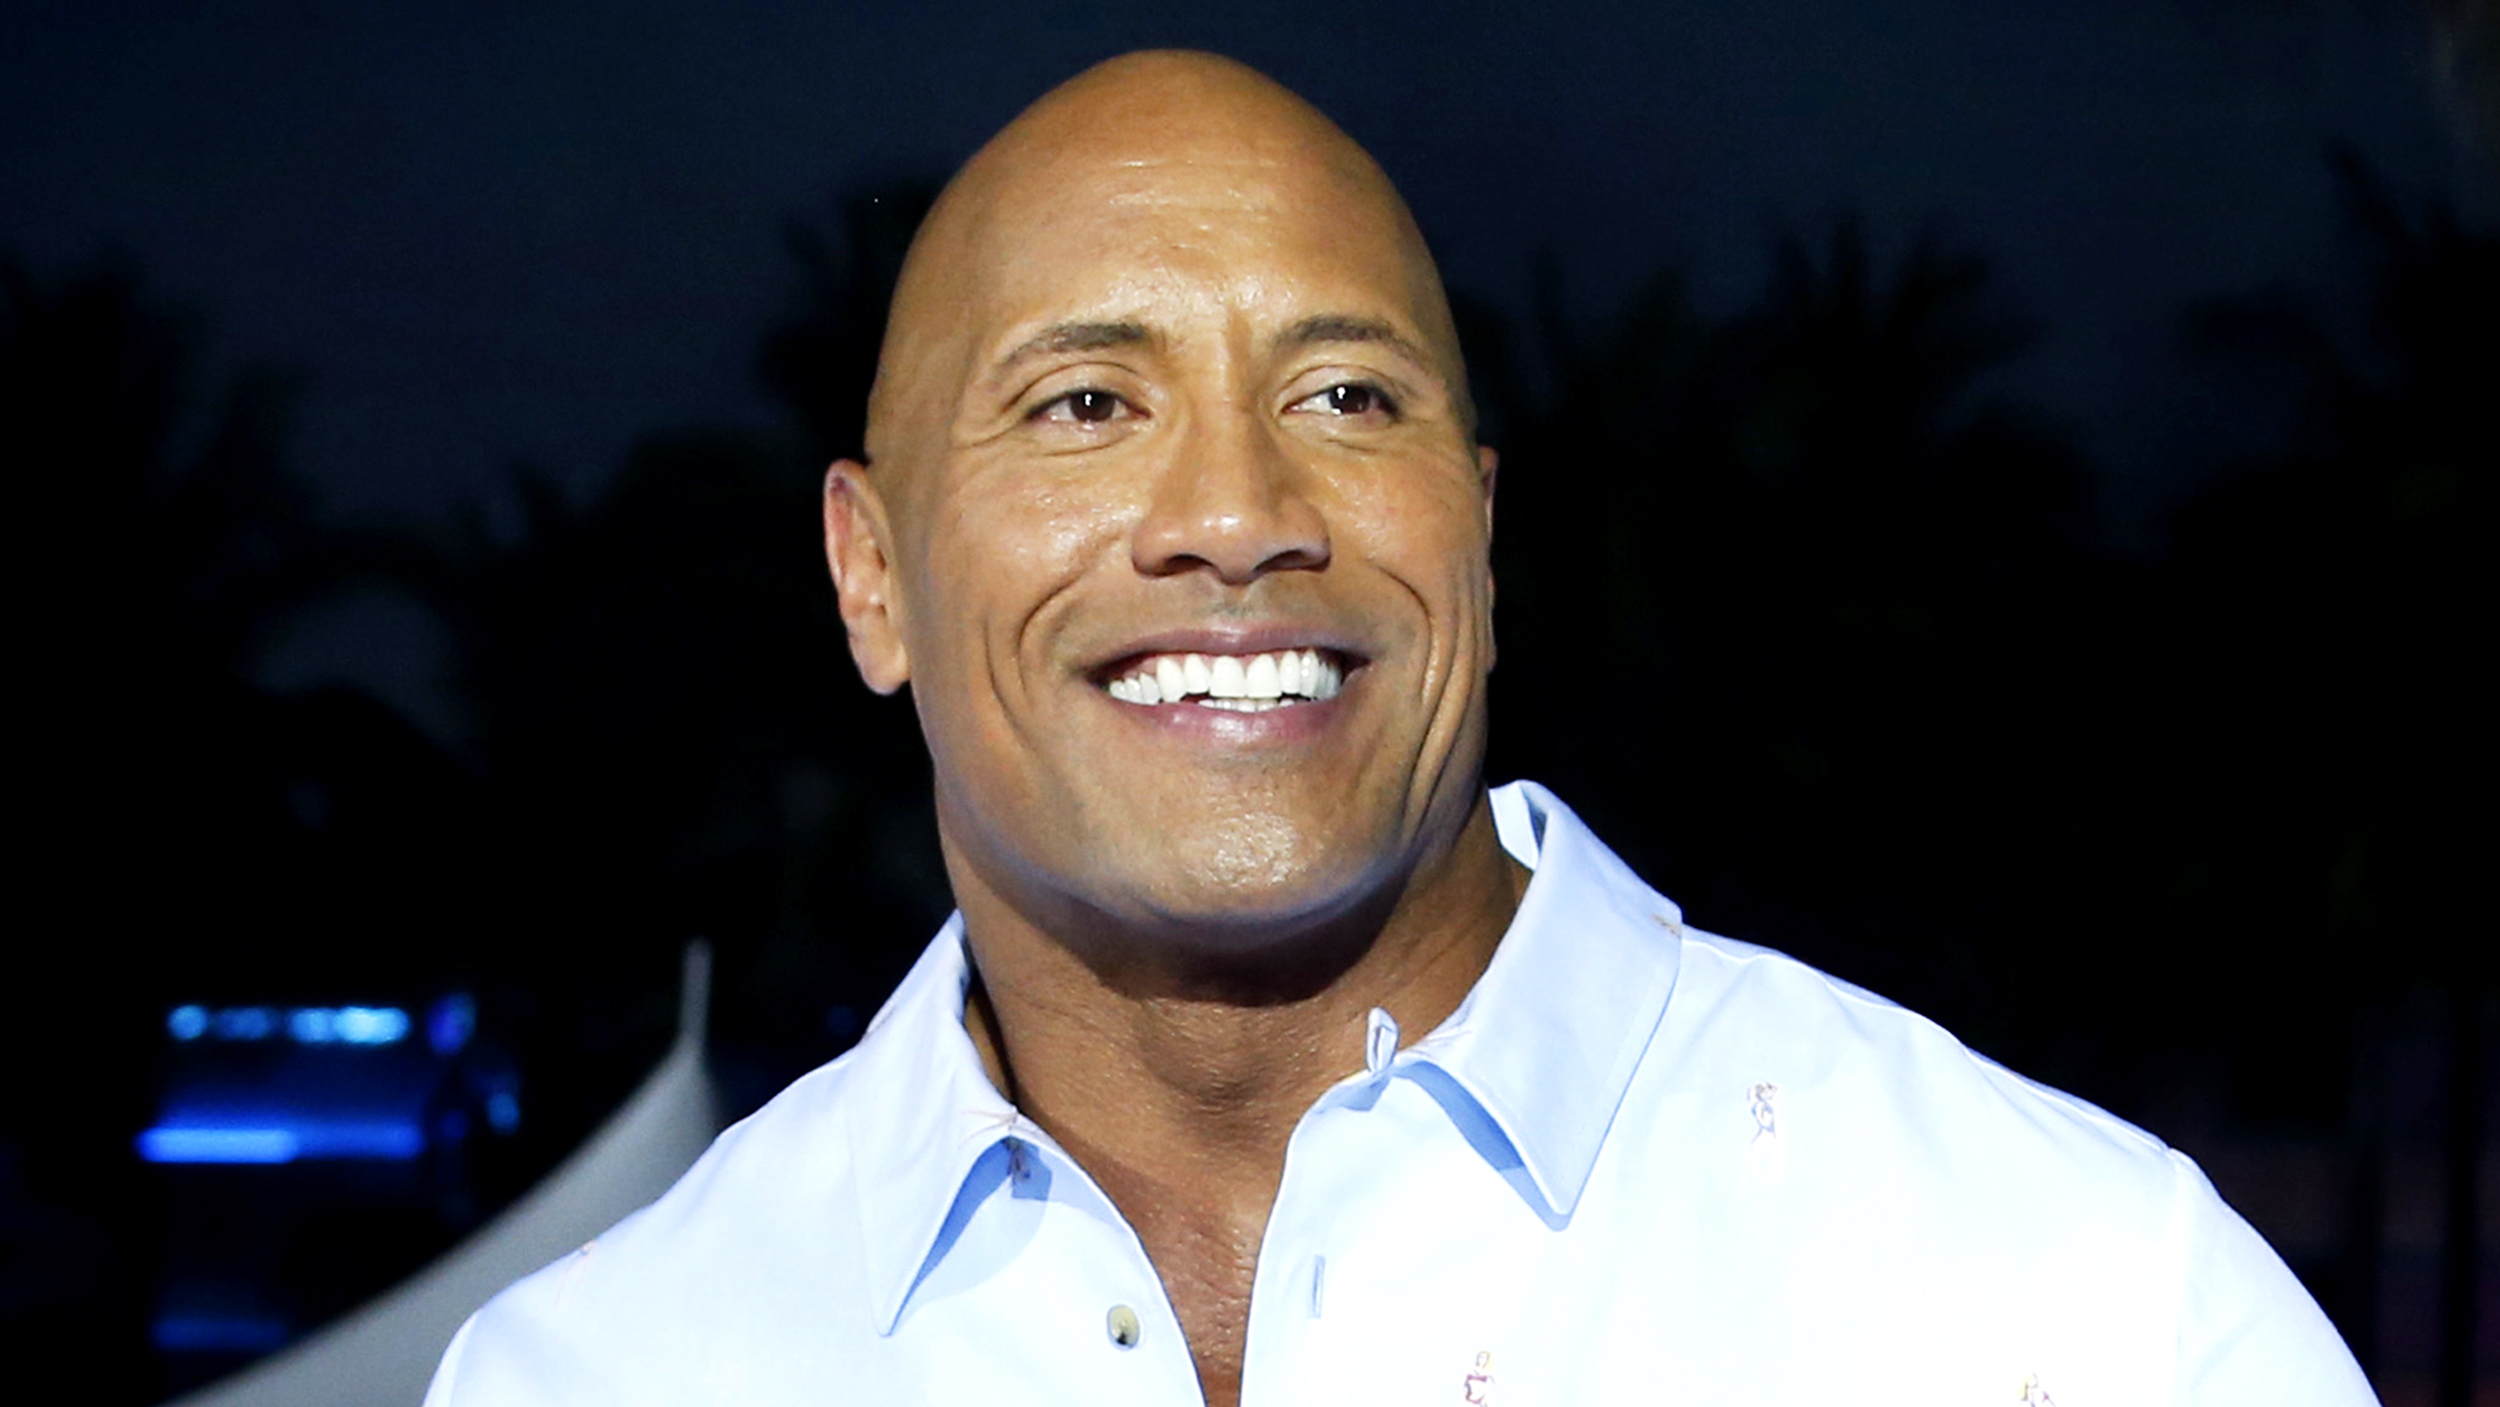 Dwayne Quot The Rock Quot Johnson Shares His Skin Care Routine